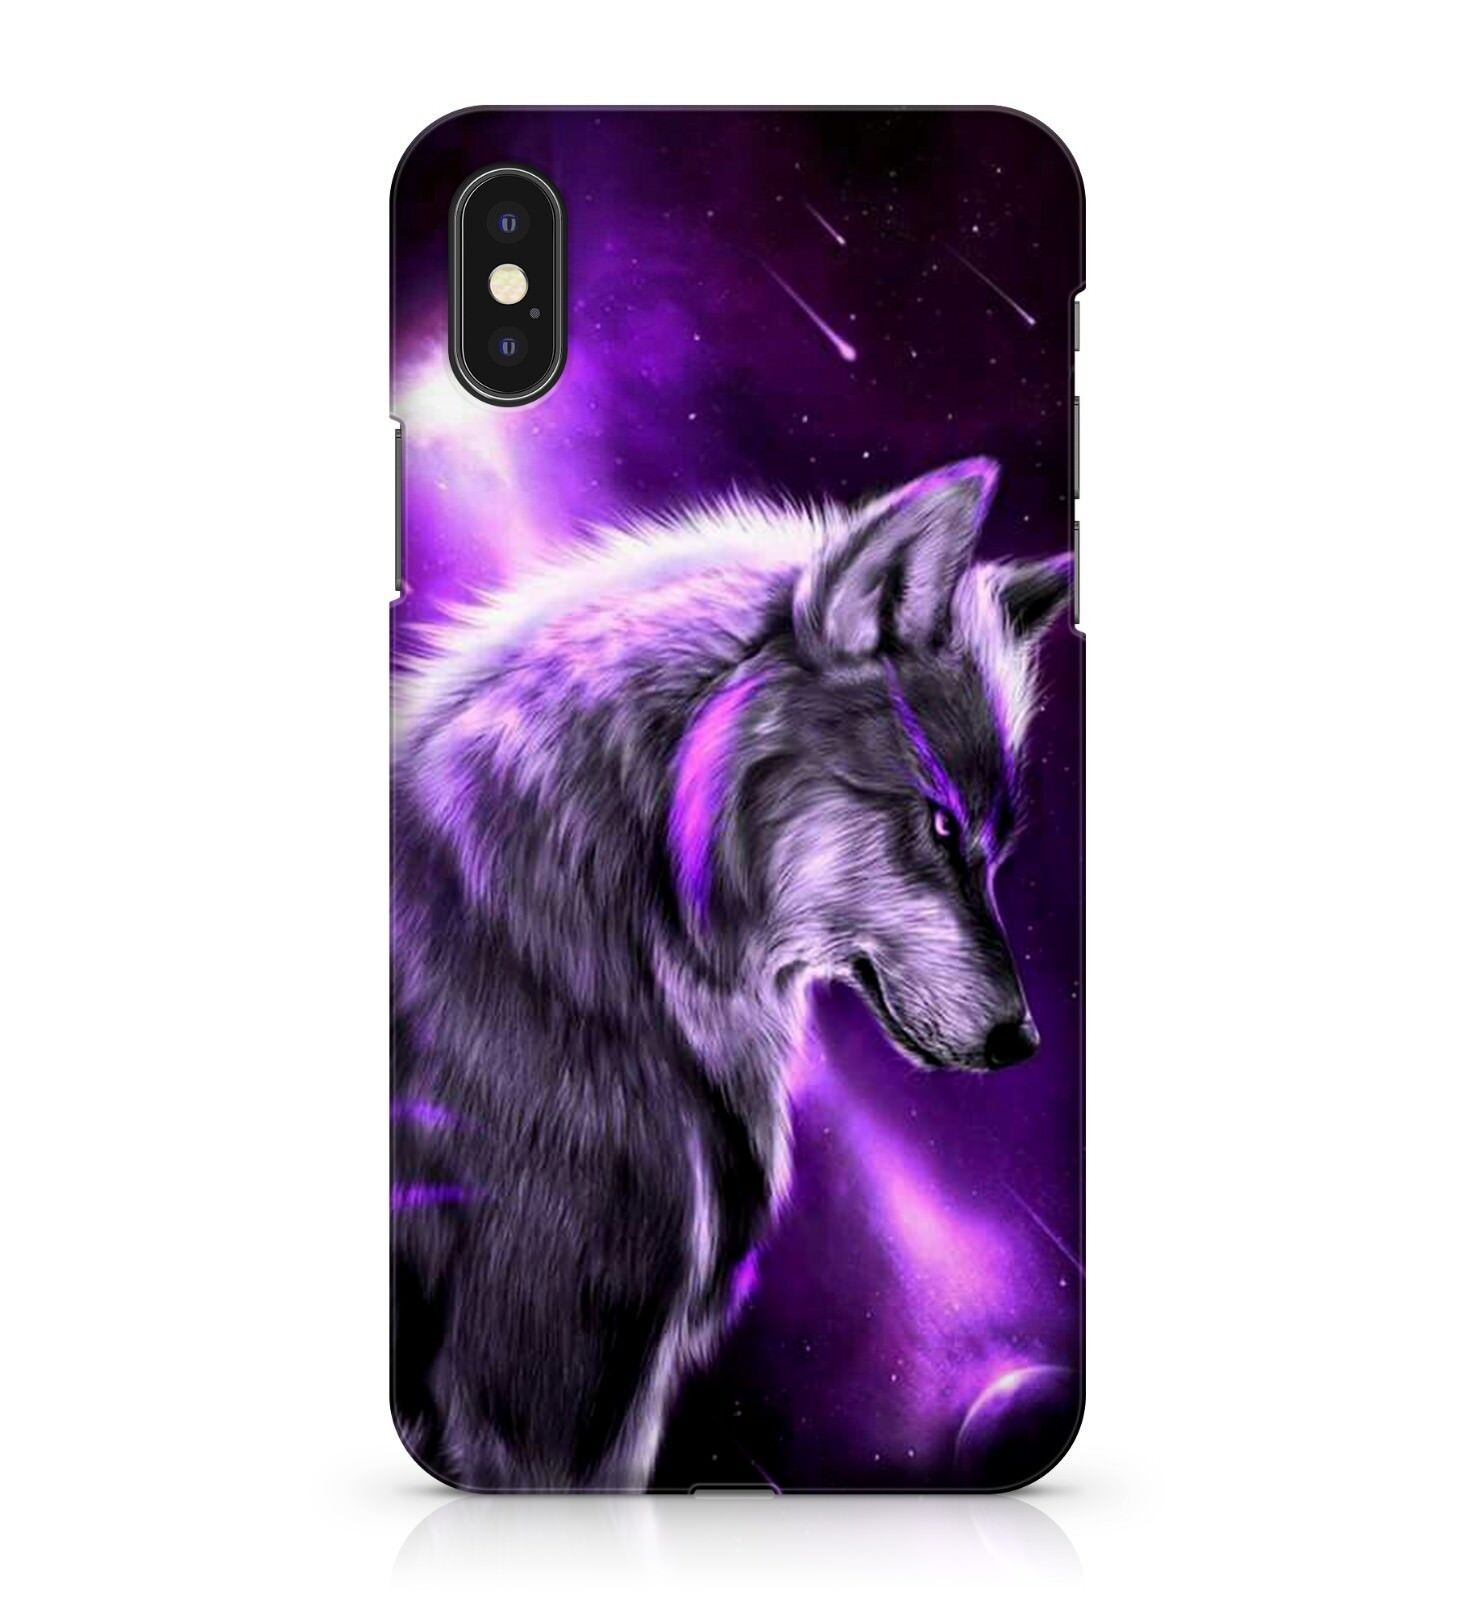 promo code b31b7 81a83 Details about Fury Space Wolf Purple Galaxy Shooting Nova Stars Night  Animal Phone Case Cover